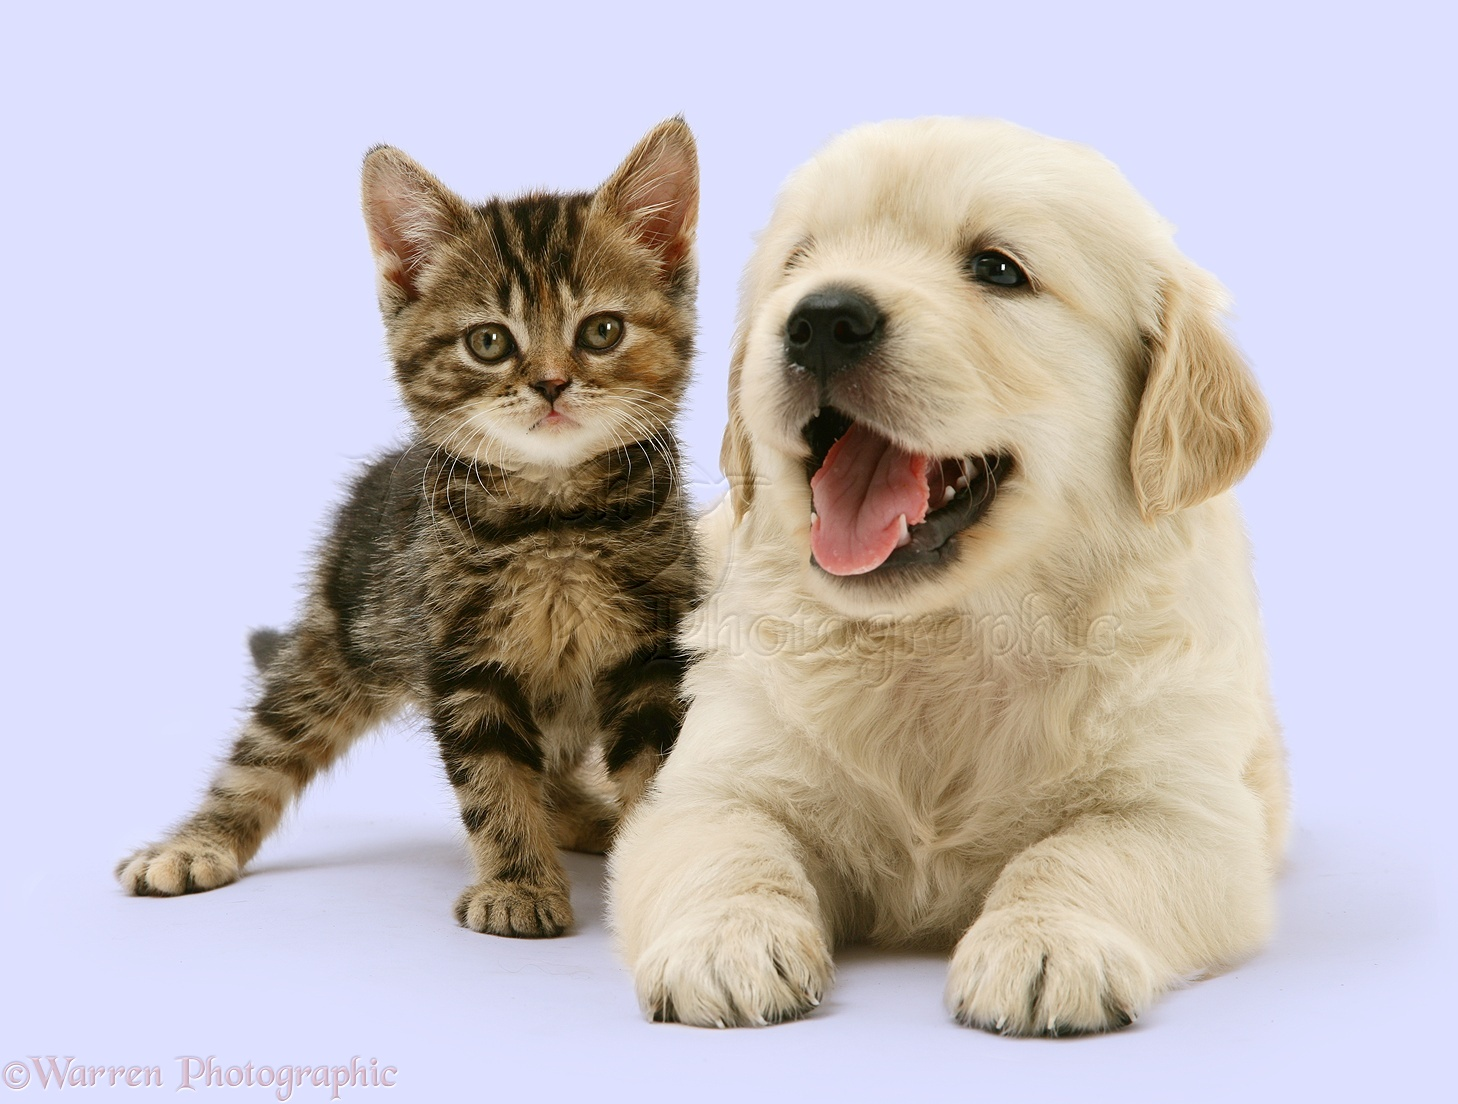 Pets Tabby Kitten and Golden Retriever puppy photo WP